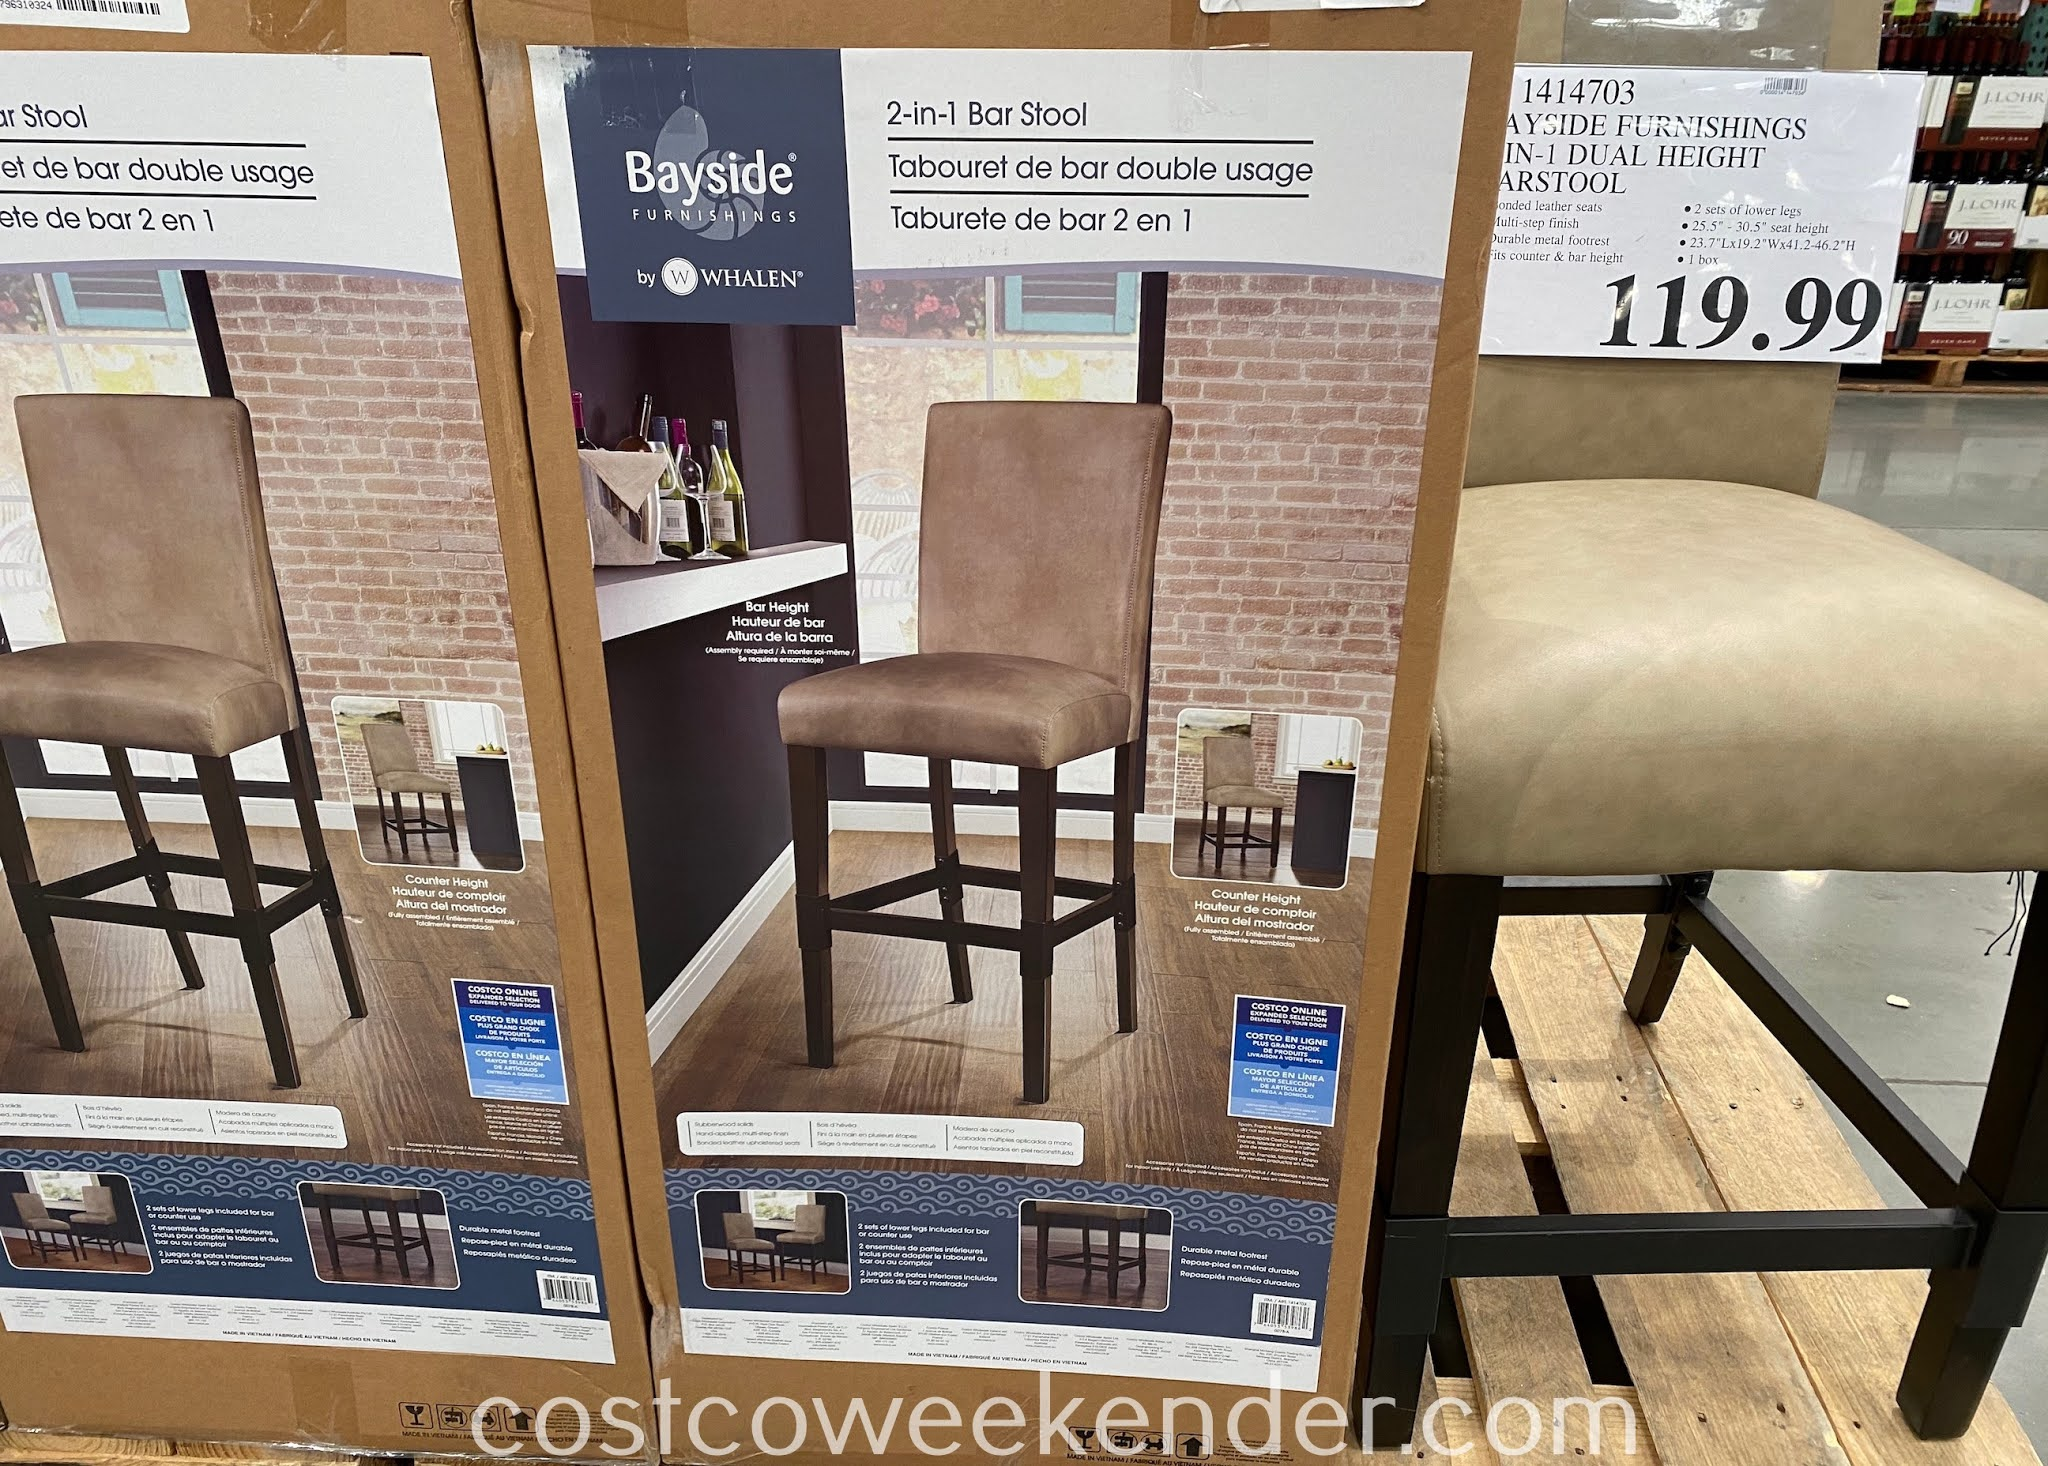 Eat a meal at your kitchen counter with the Bayside Furnishings 2-in-1 Bar Stool